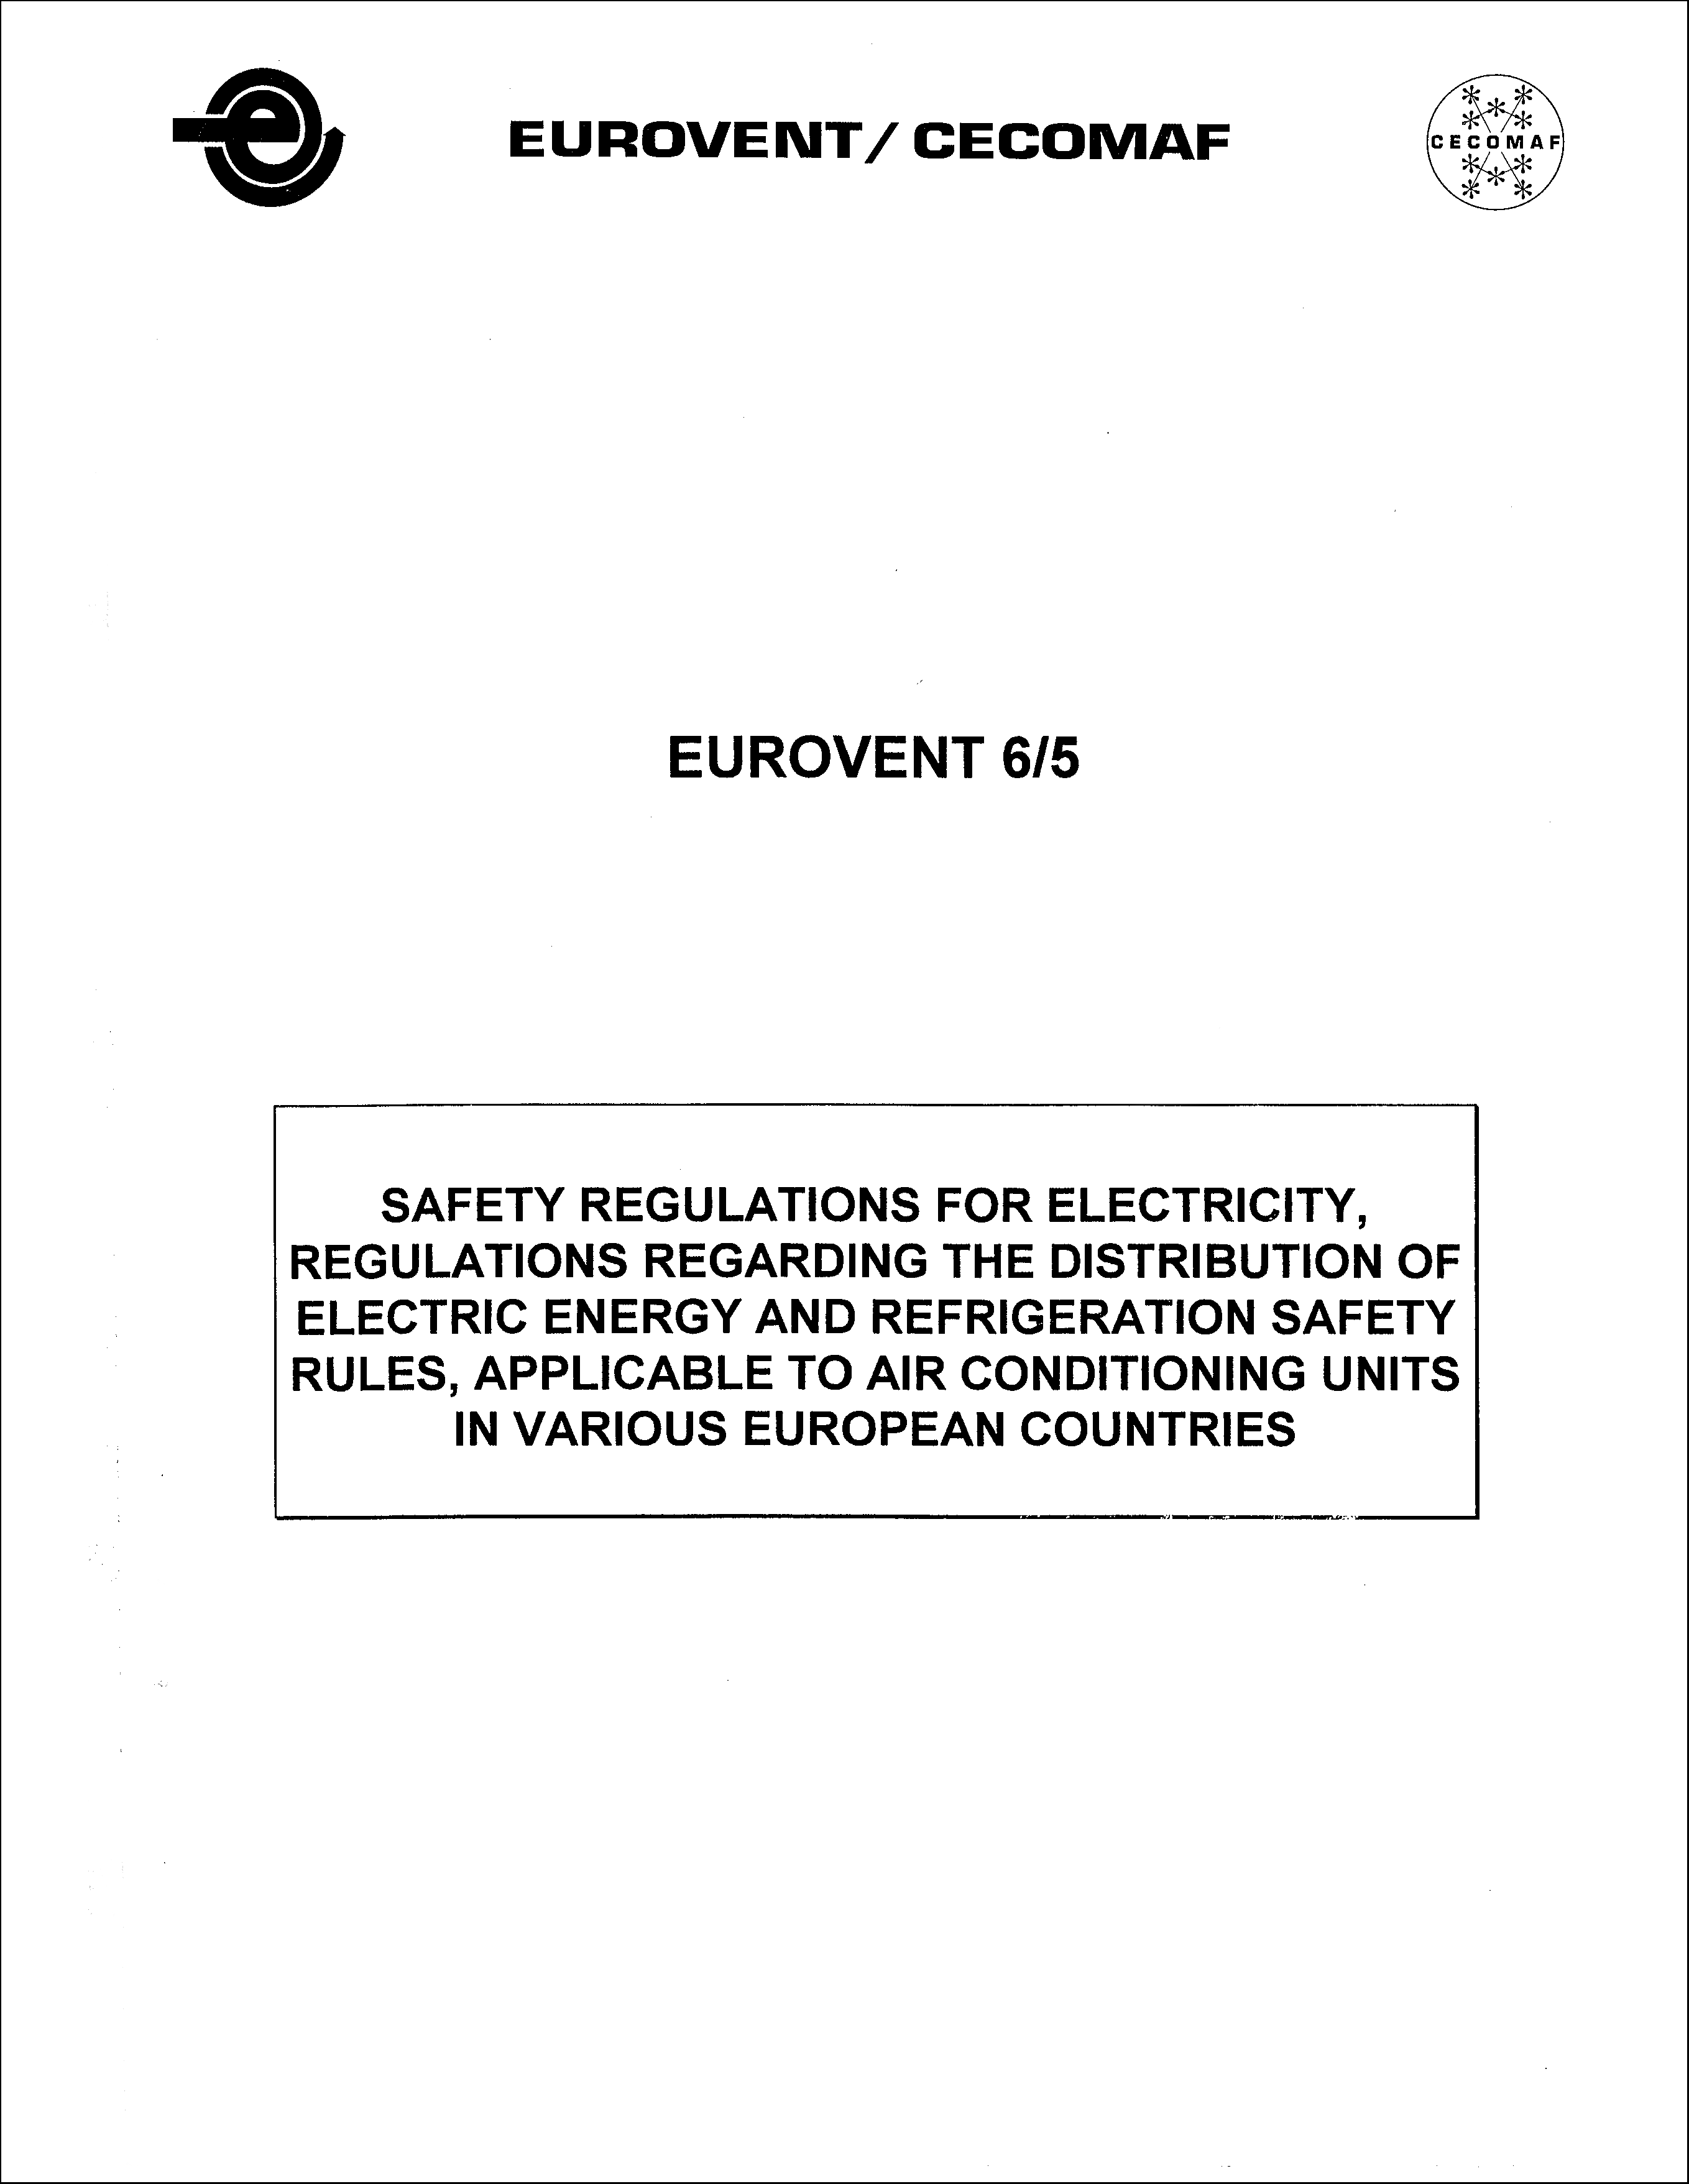 1985 - Safety regulations for electricity